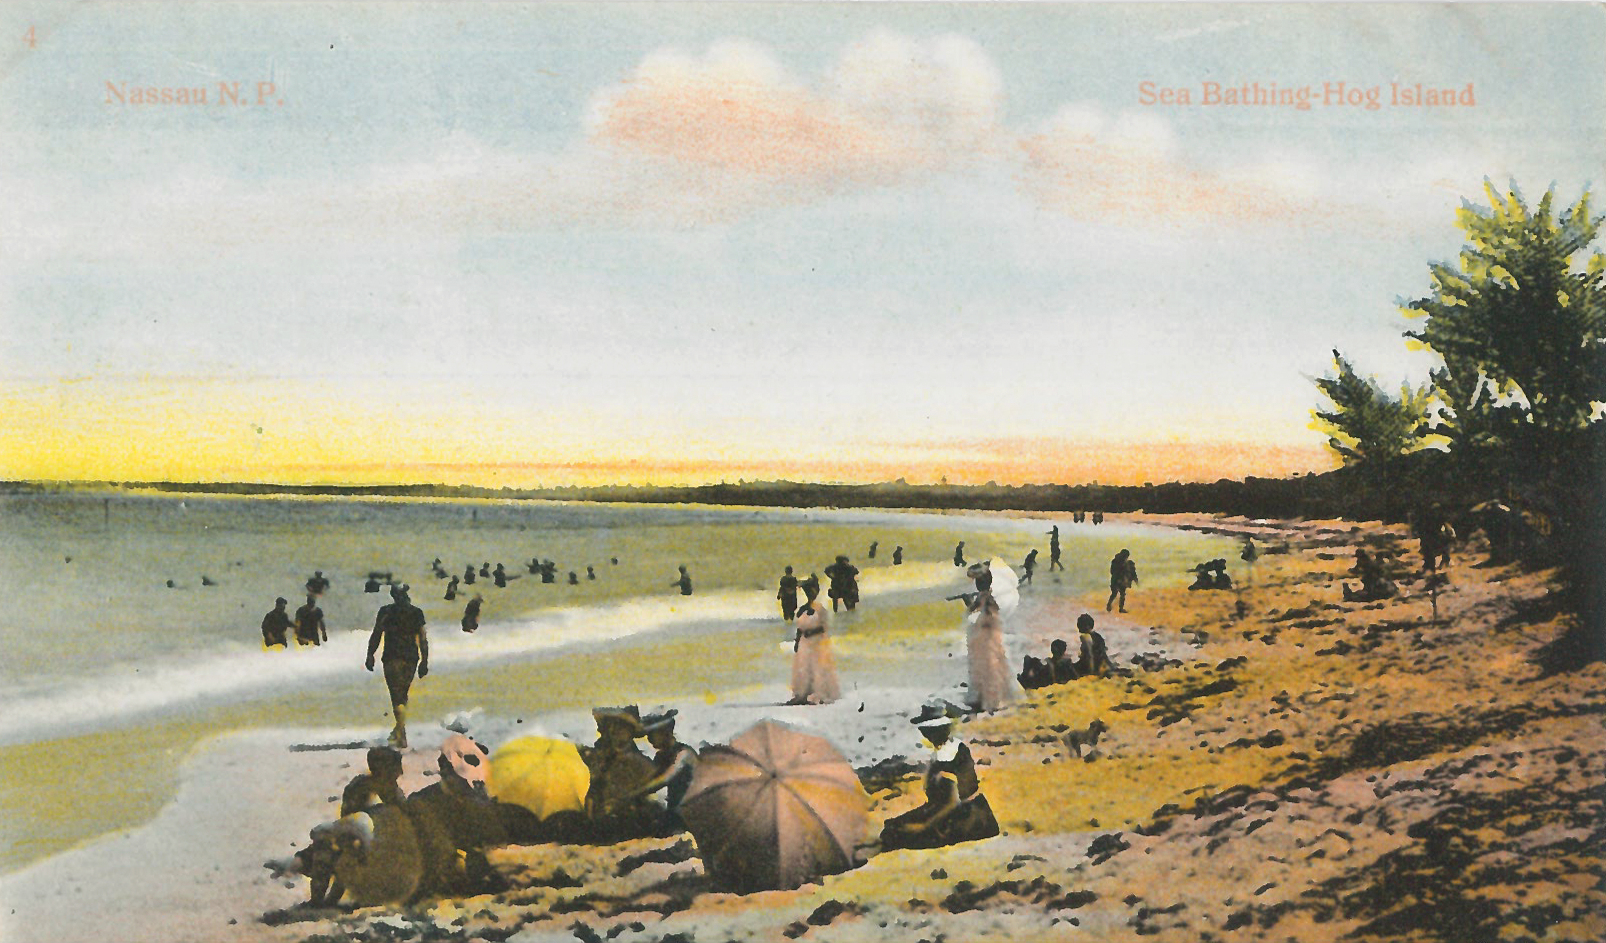 """""""Sea Bathing - Hog Island"""" (c.1860-1930), hand-coloured postcard, 3 1/2 x 5 1/2. Part of the National Collection."""